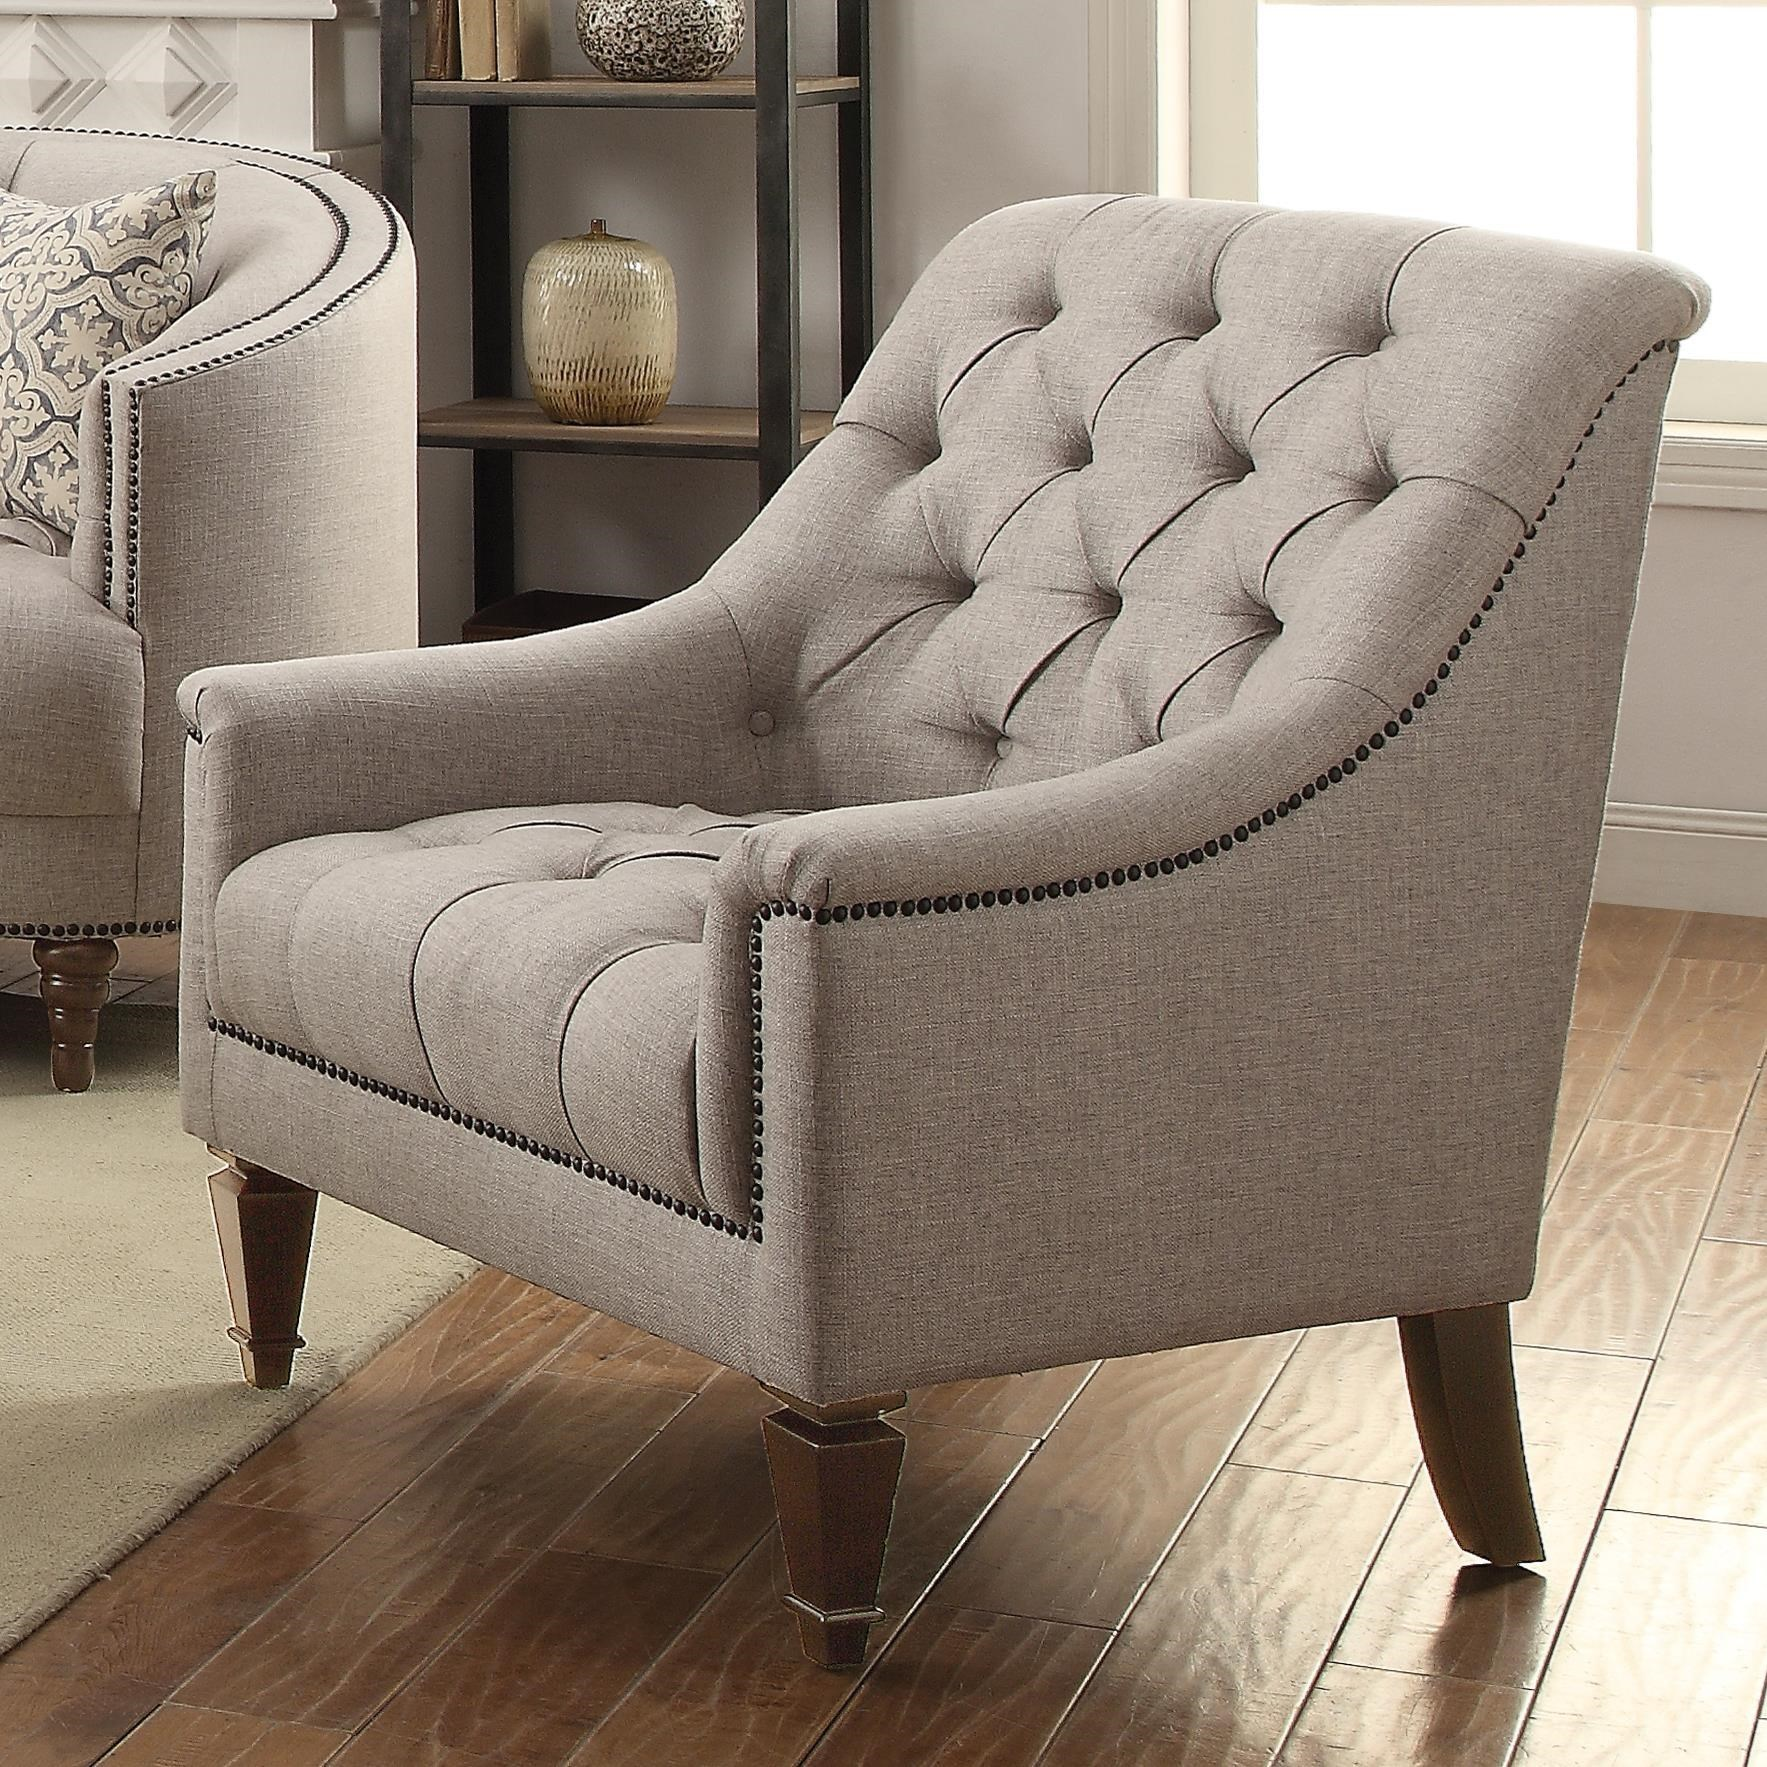 Avonlea Chair by Coaster at Northeast Factory Direct